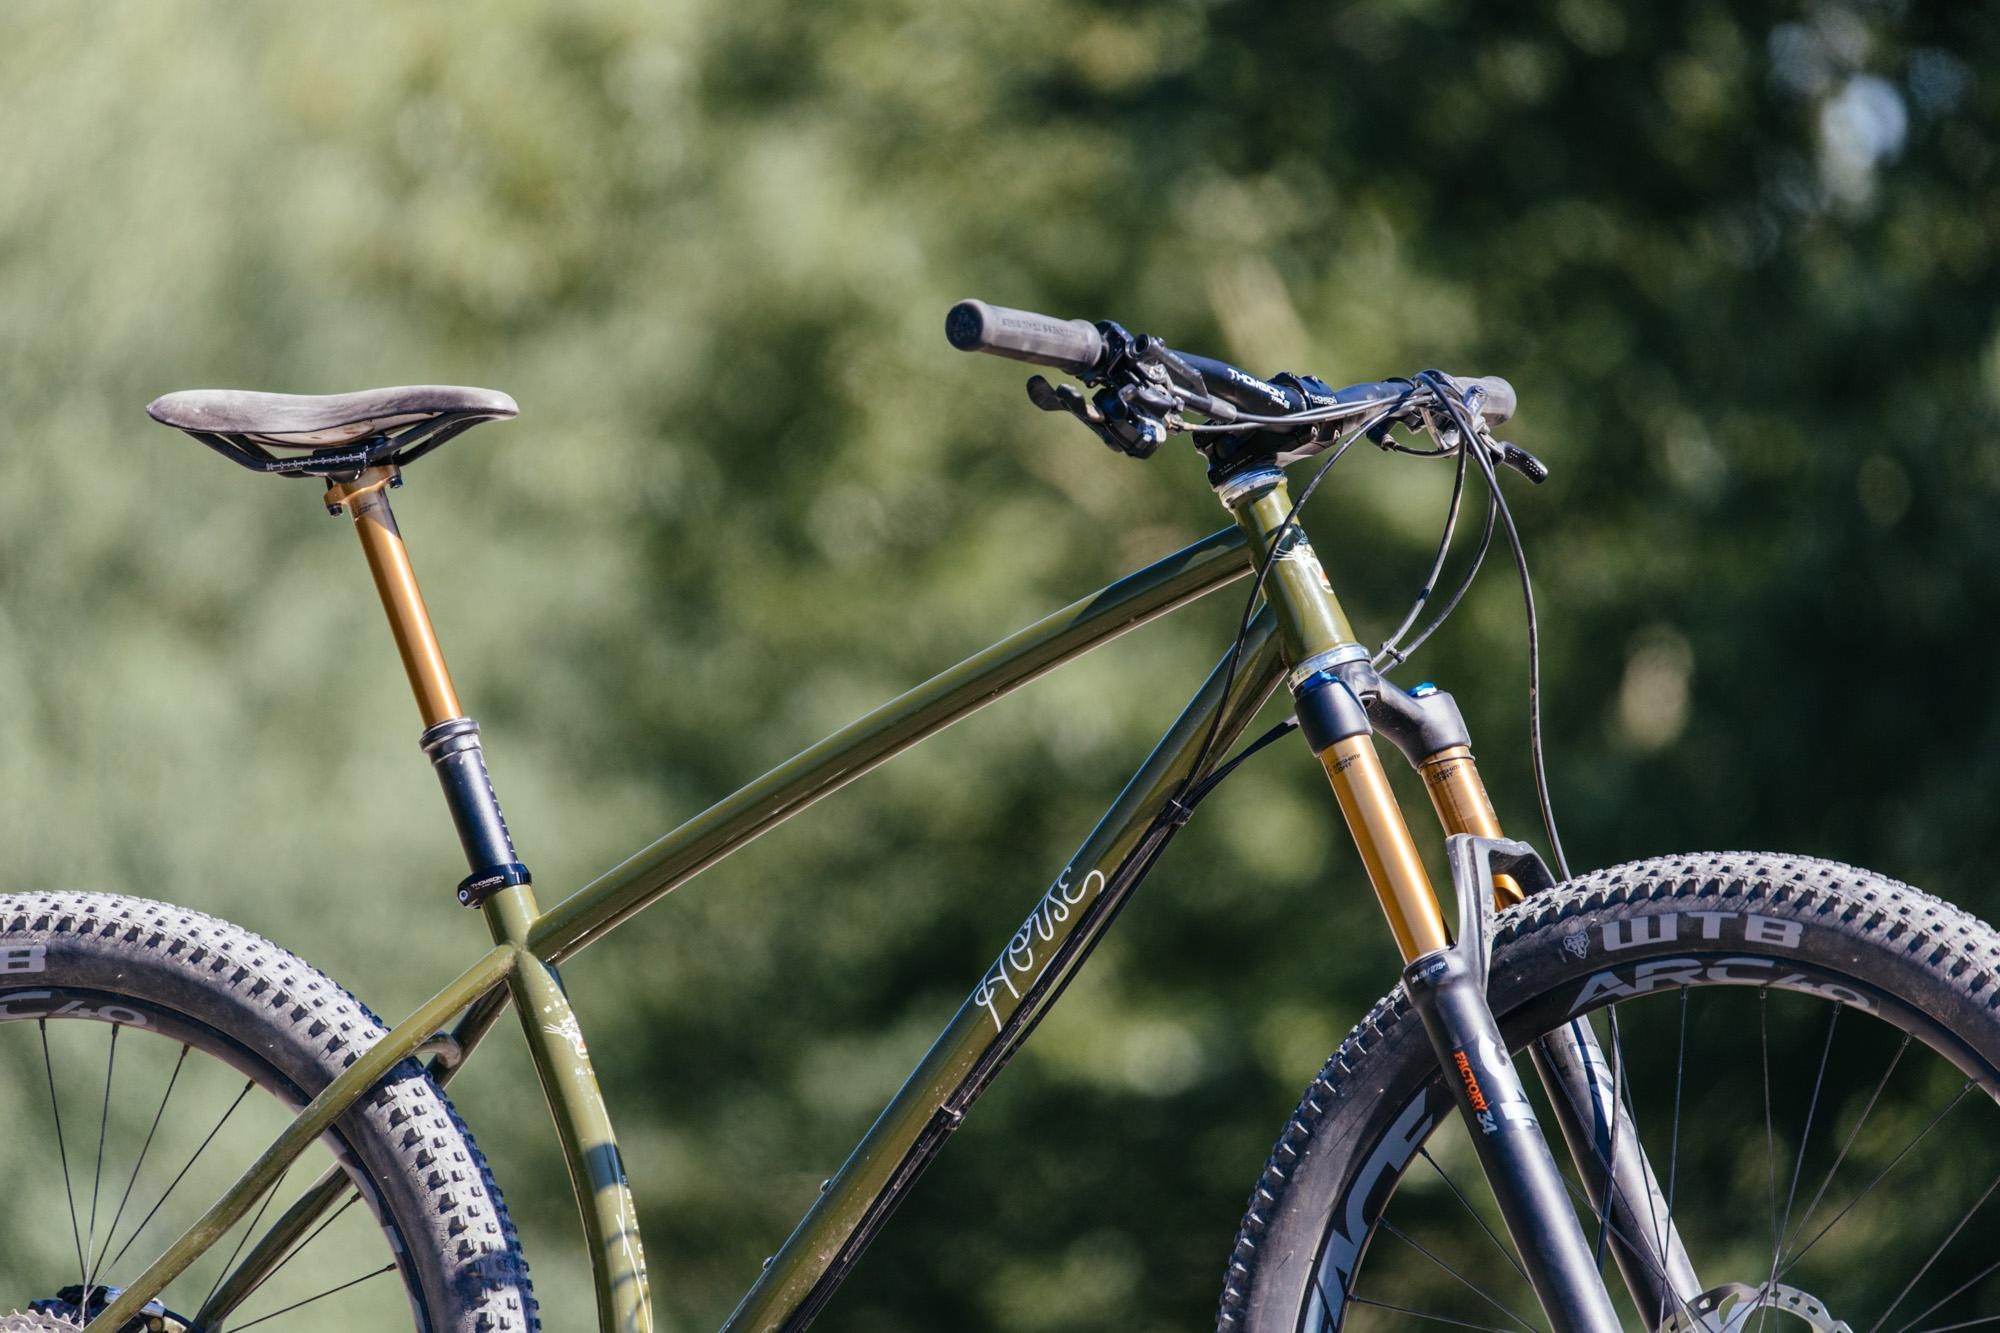 Builder's Camp in Bozeman: Horse Cycles Hell Cat Hardtail